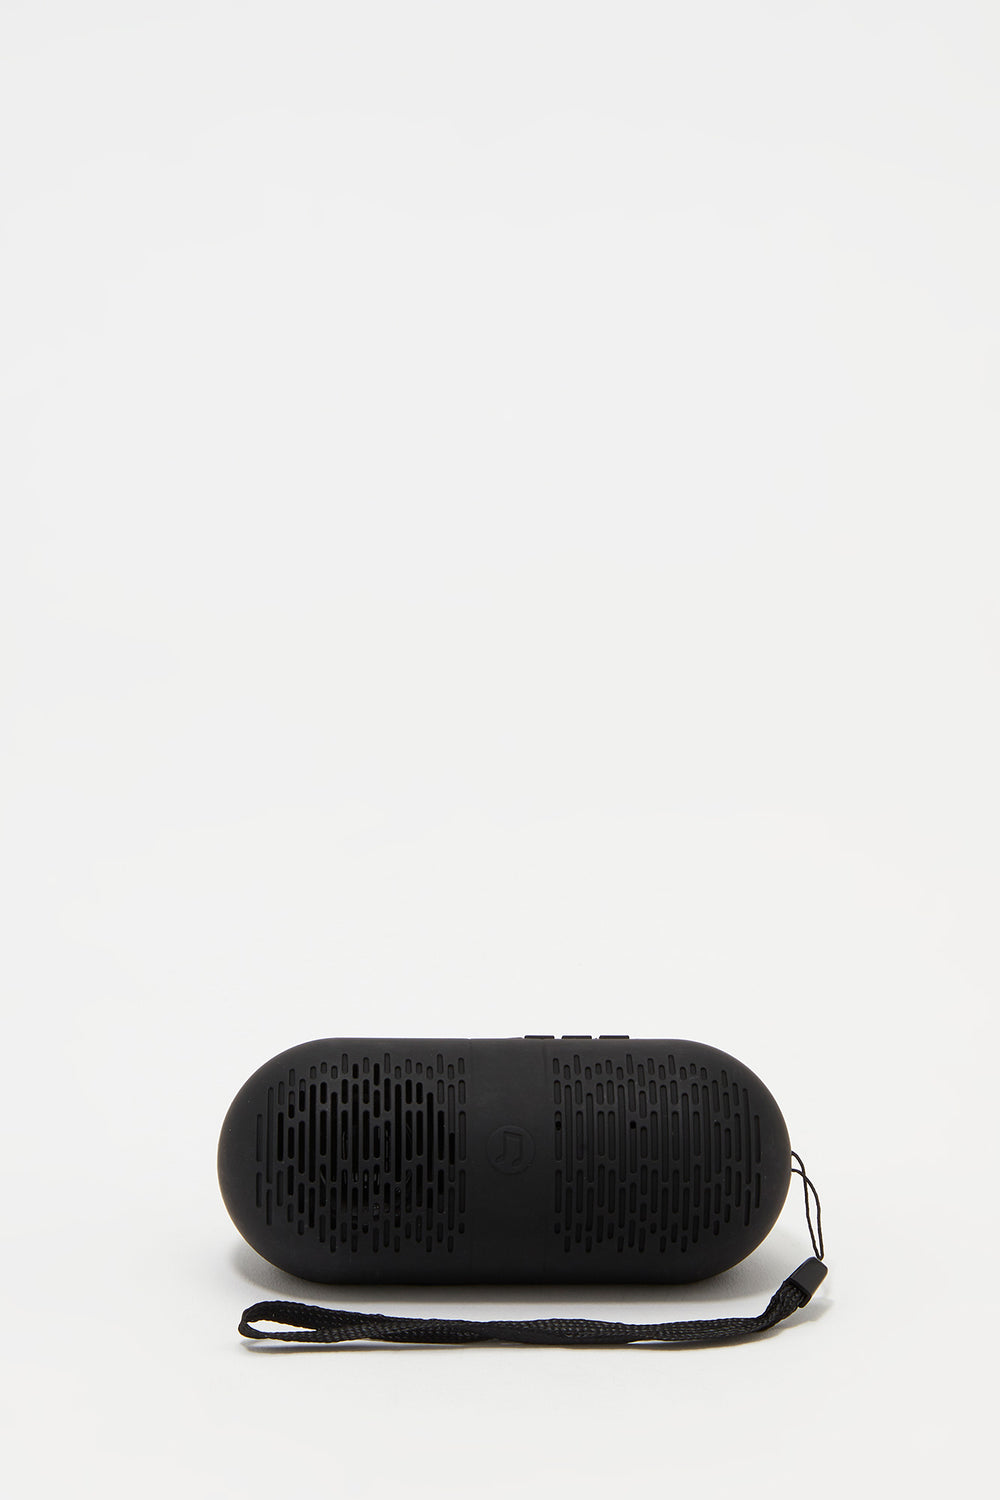 Bluetooth Portable Wireless Speaker Multi